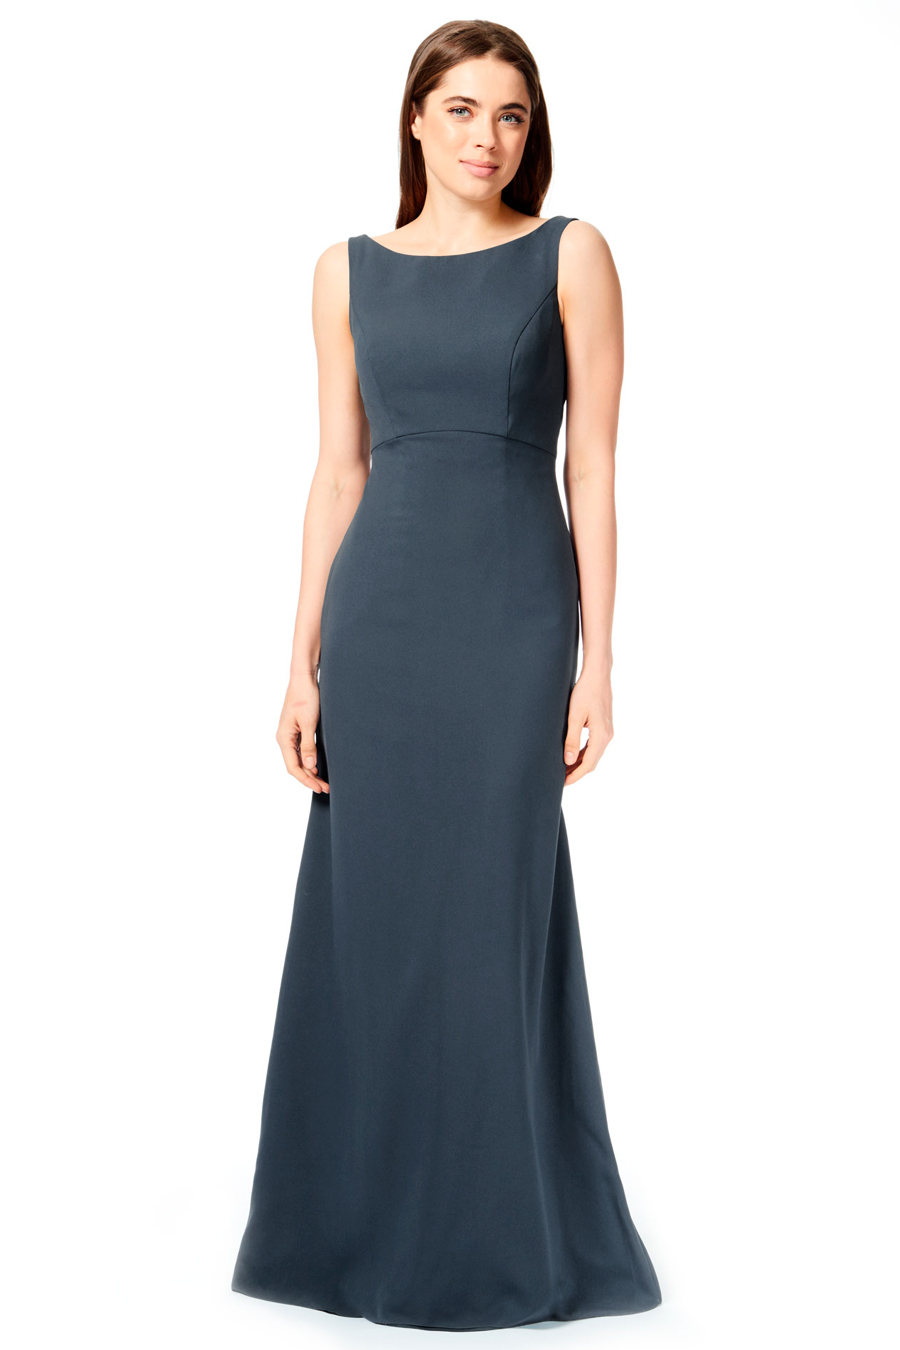 High Front Neckline With A Deep V Back Twist Knot At The Center Waist Maxi Skirt Flat